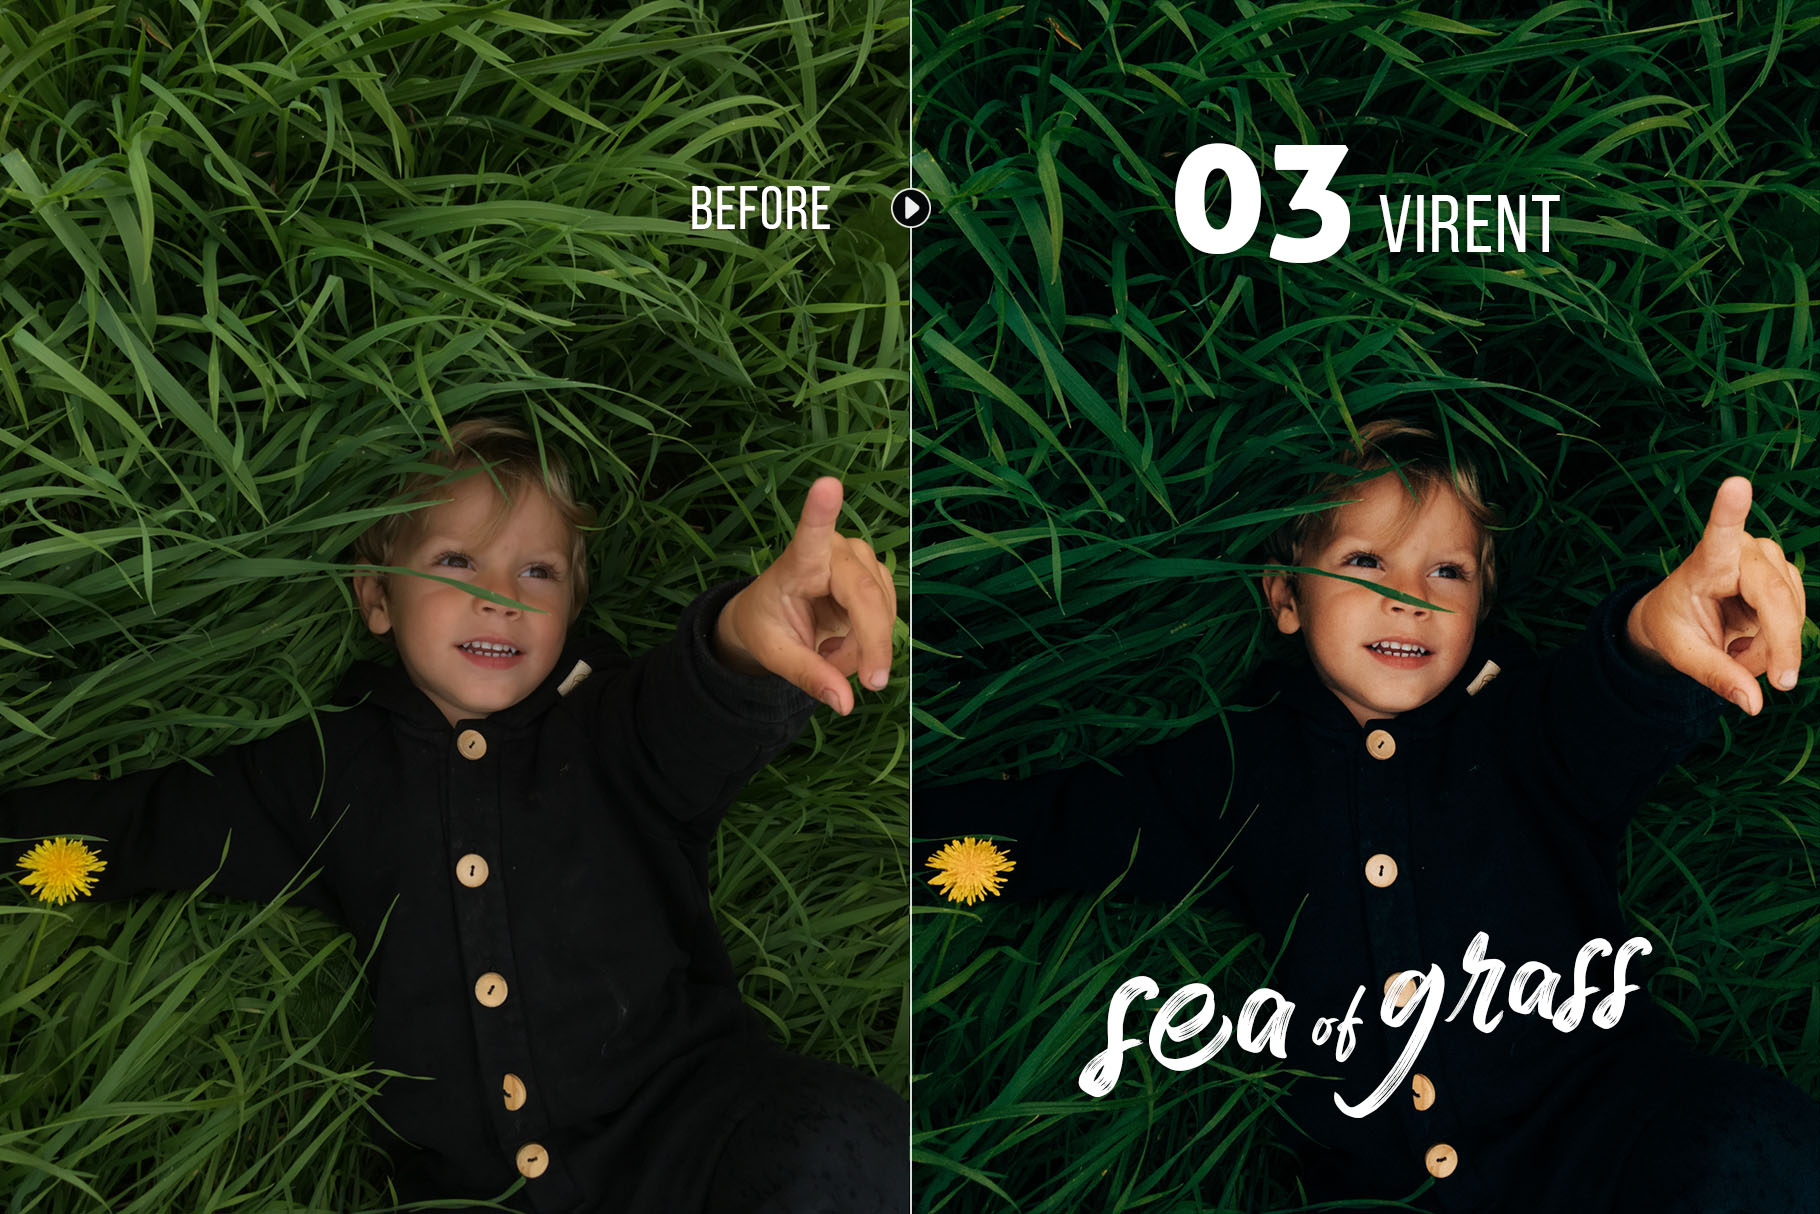 seaofgrass_preview_03